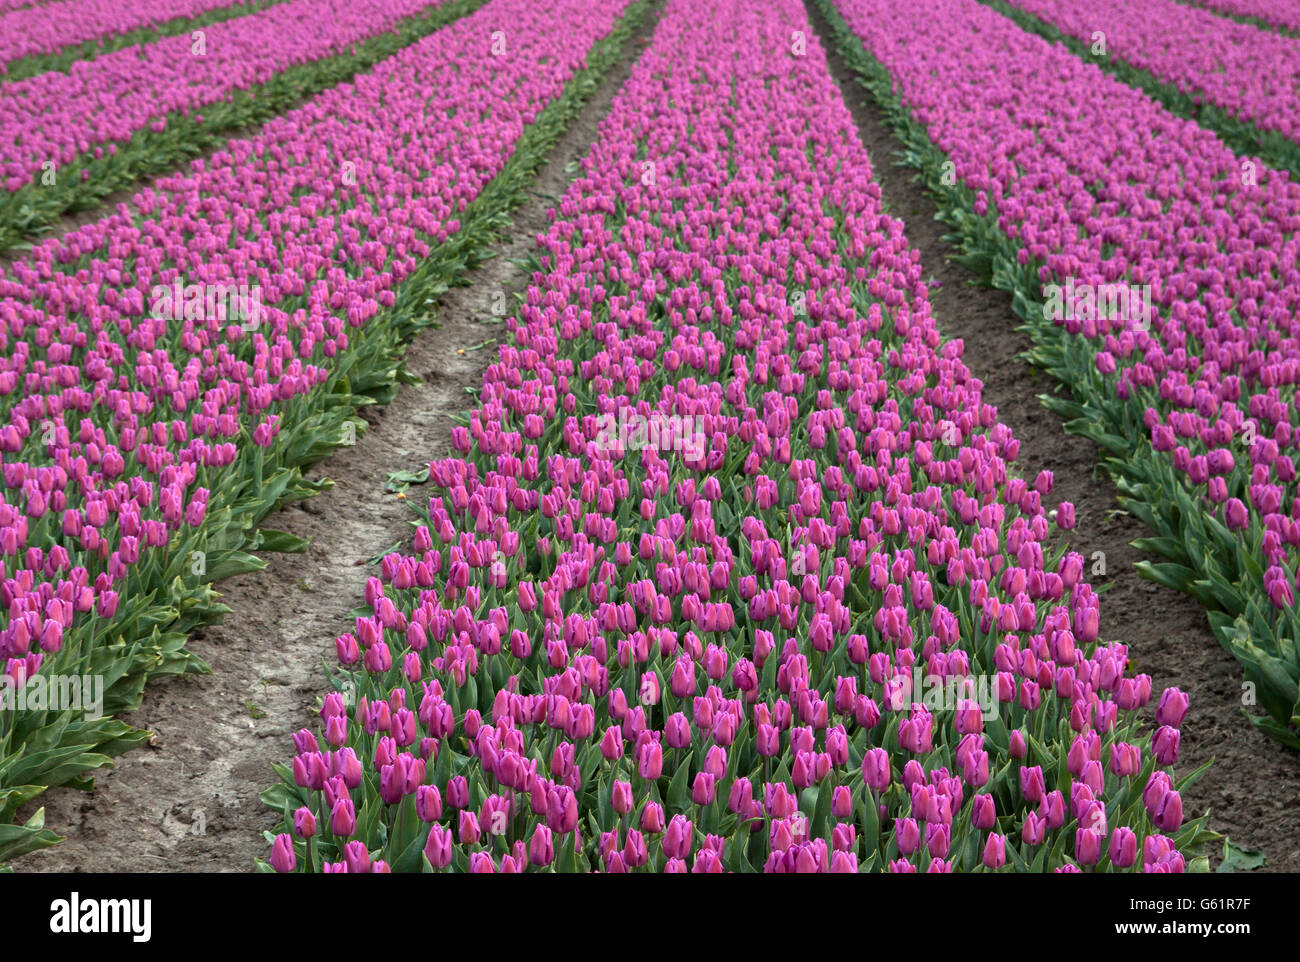 Dutch tulips in a row (Pattern image) Stock Photo